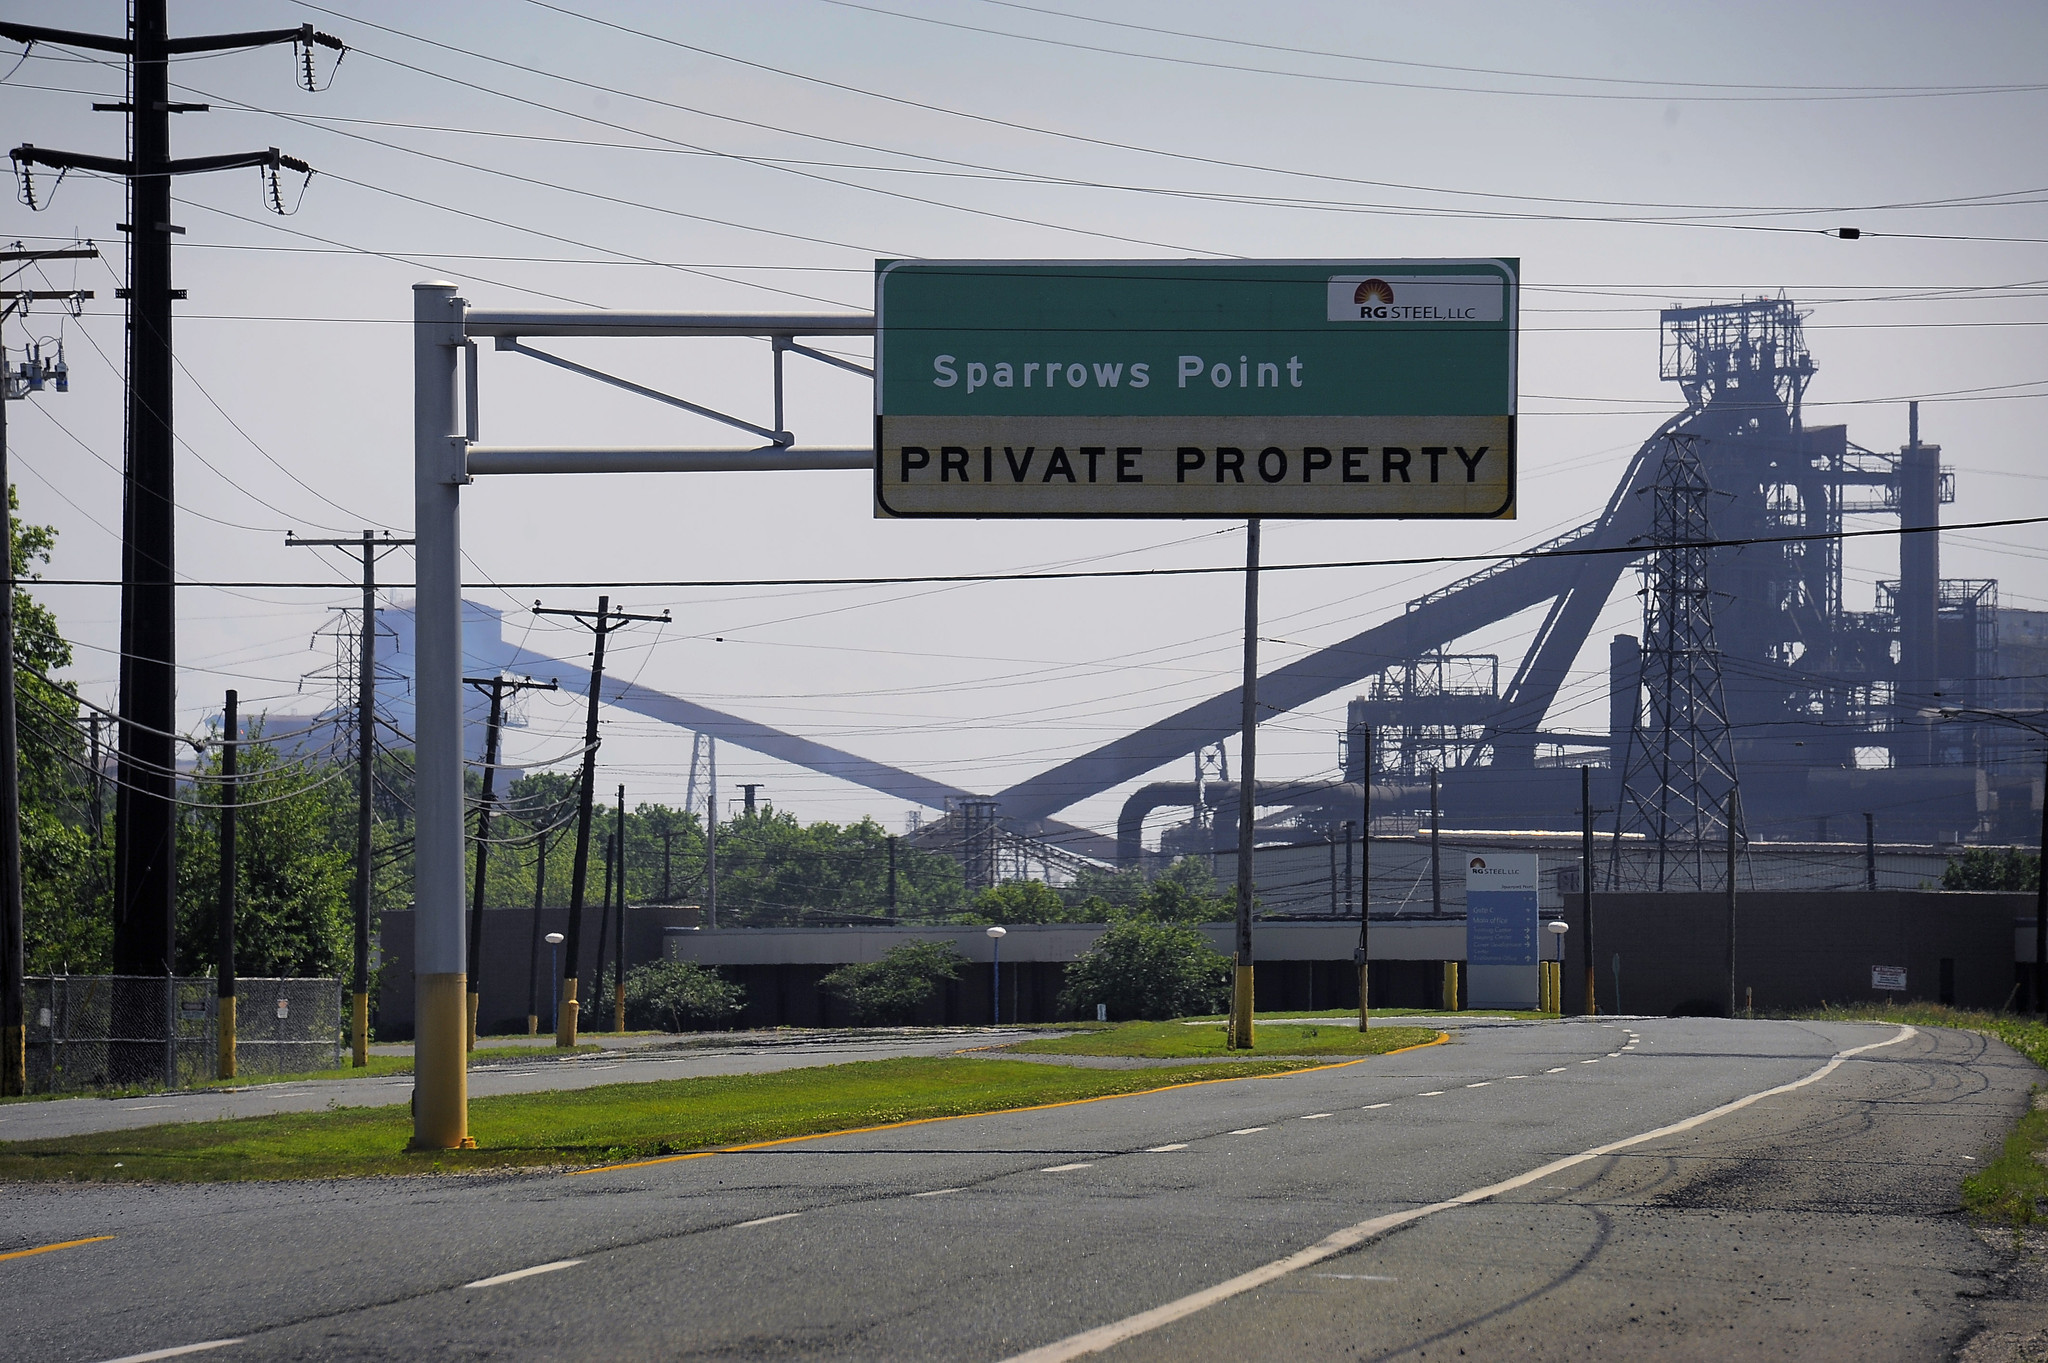 R G Steel Sparrows Point Empty road - The Virgi...